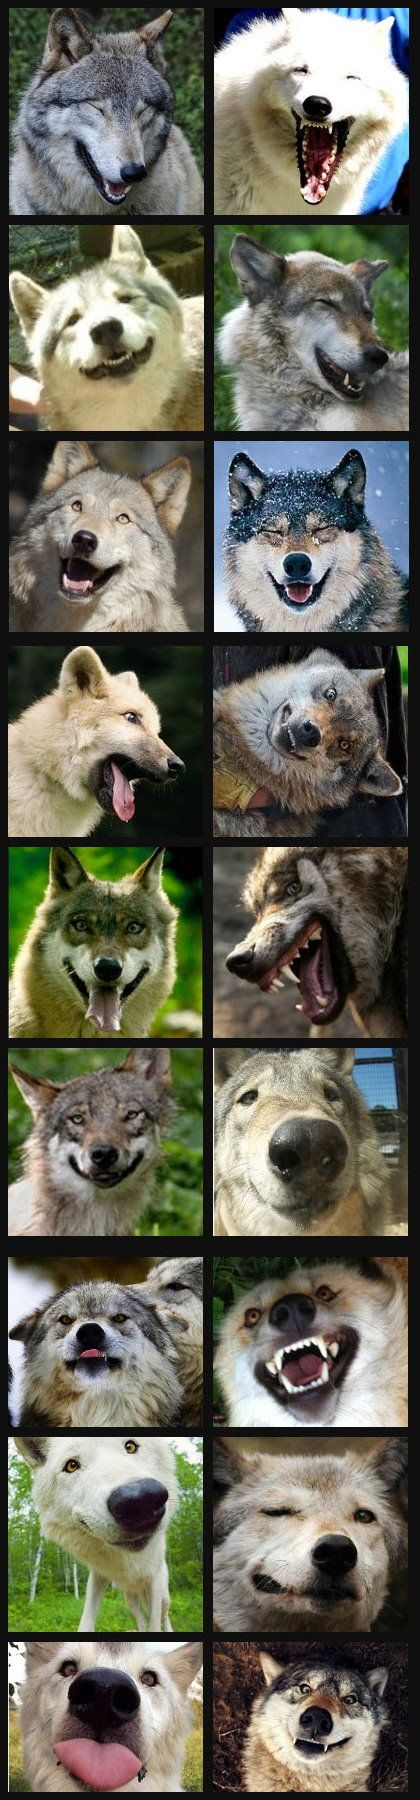 Wolves can goof off too